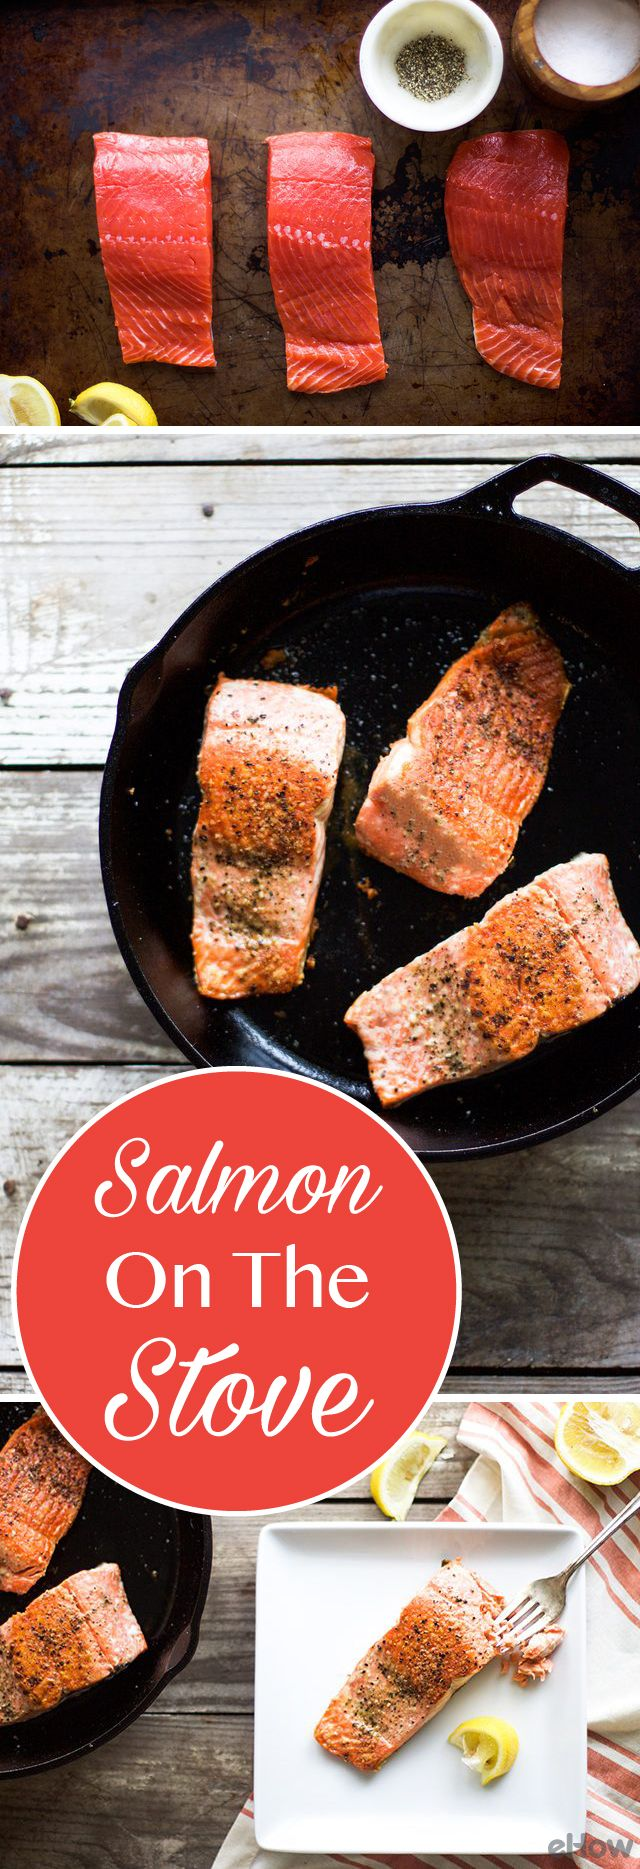 How to Cook Salmon on the Stove   Salmon on the stove ...